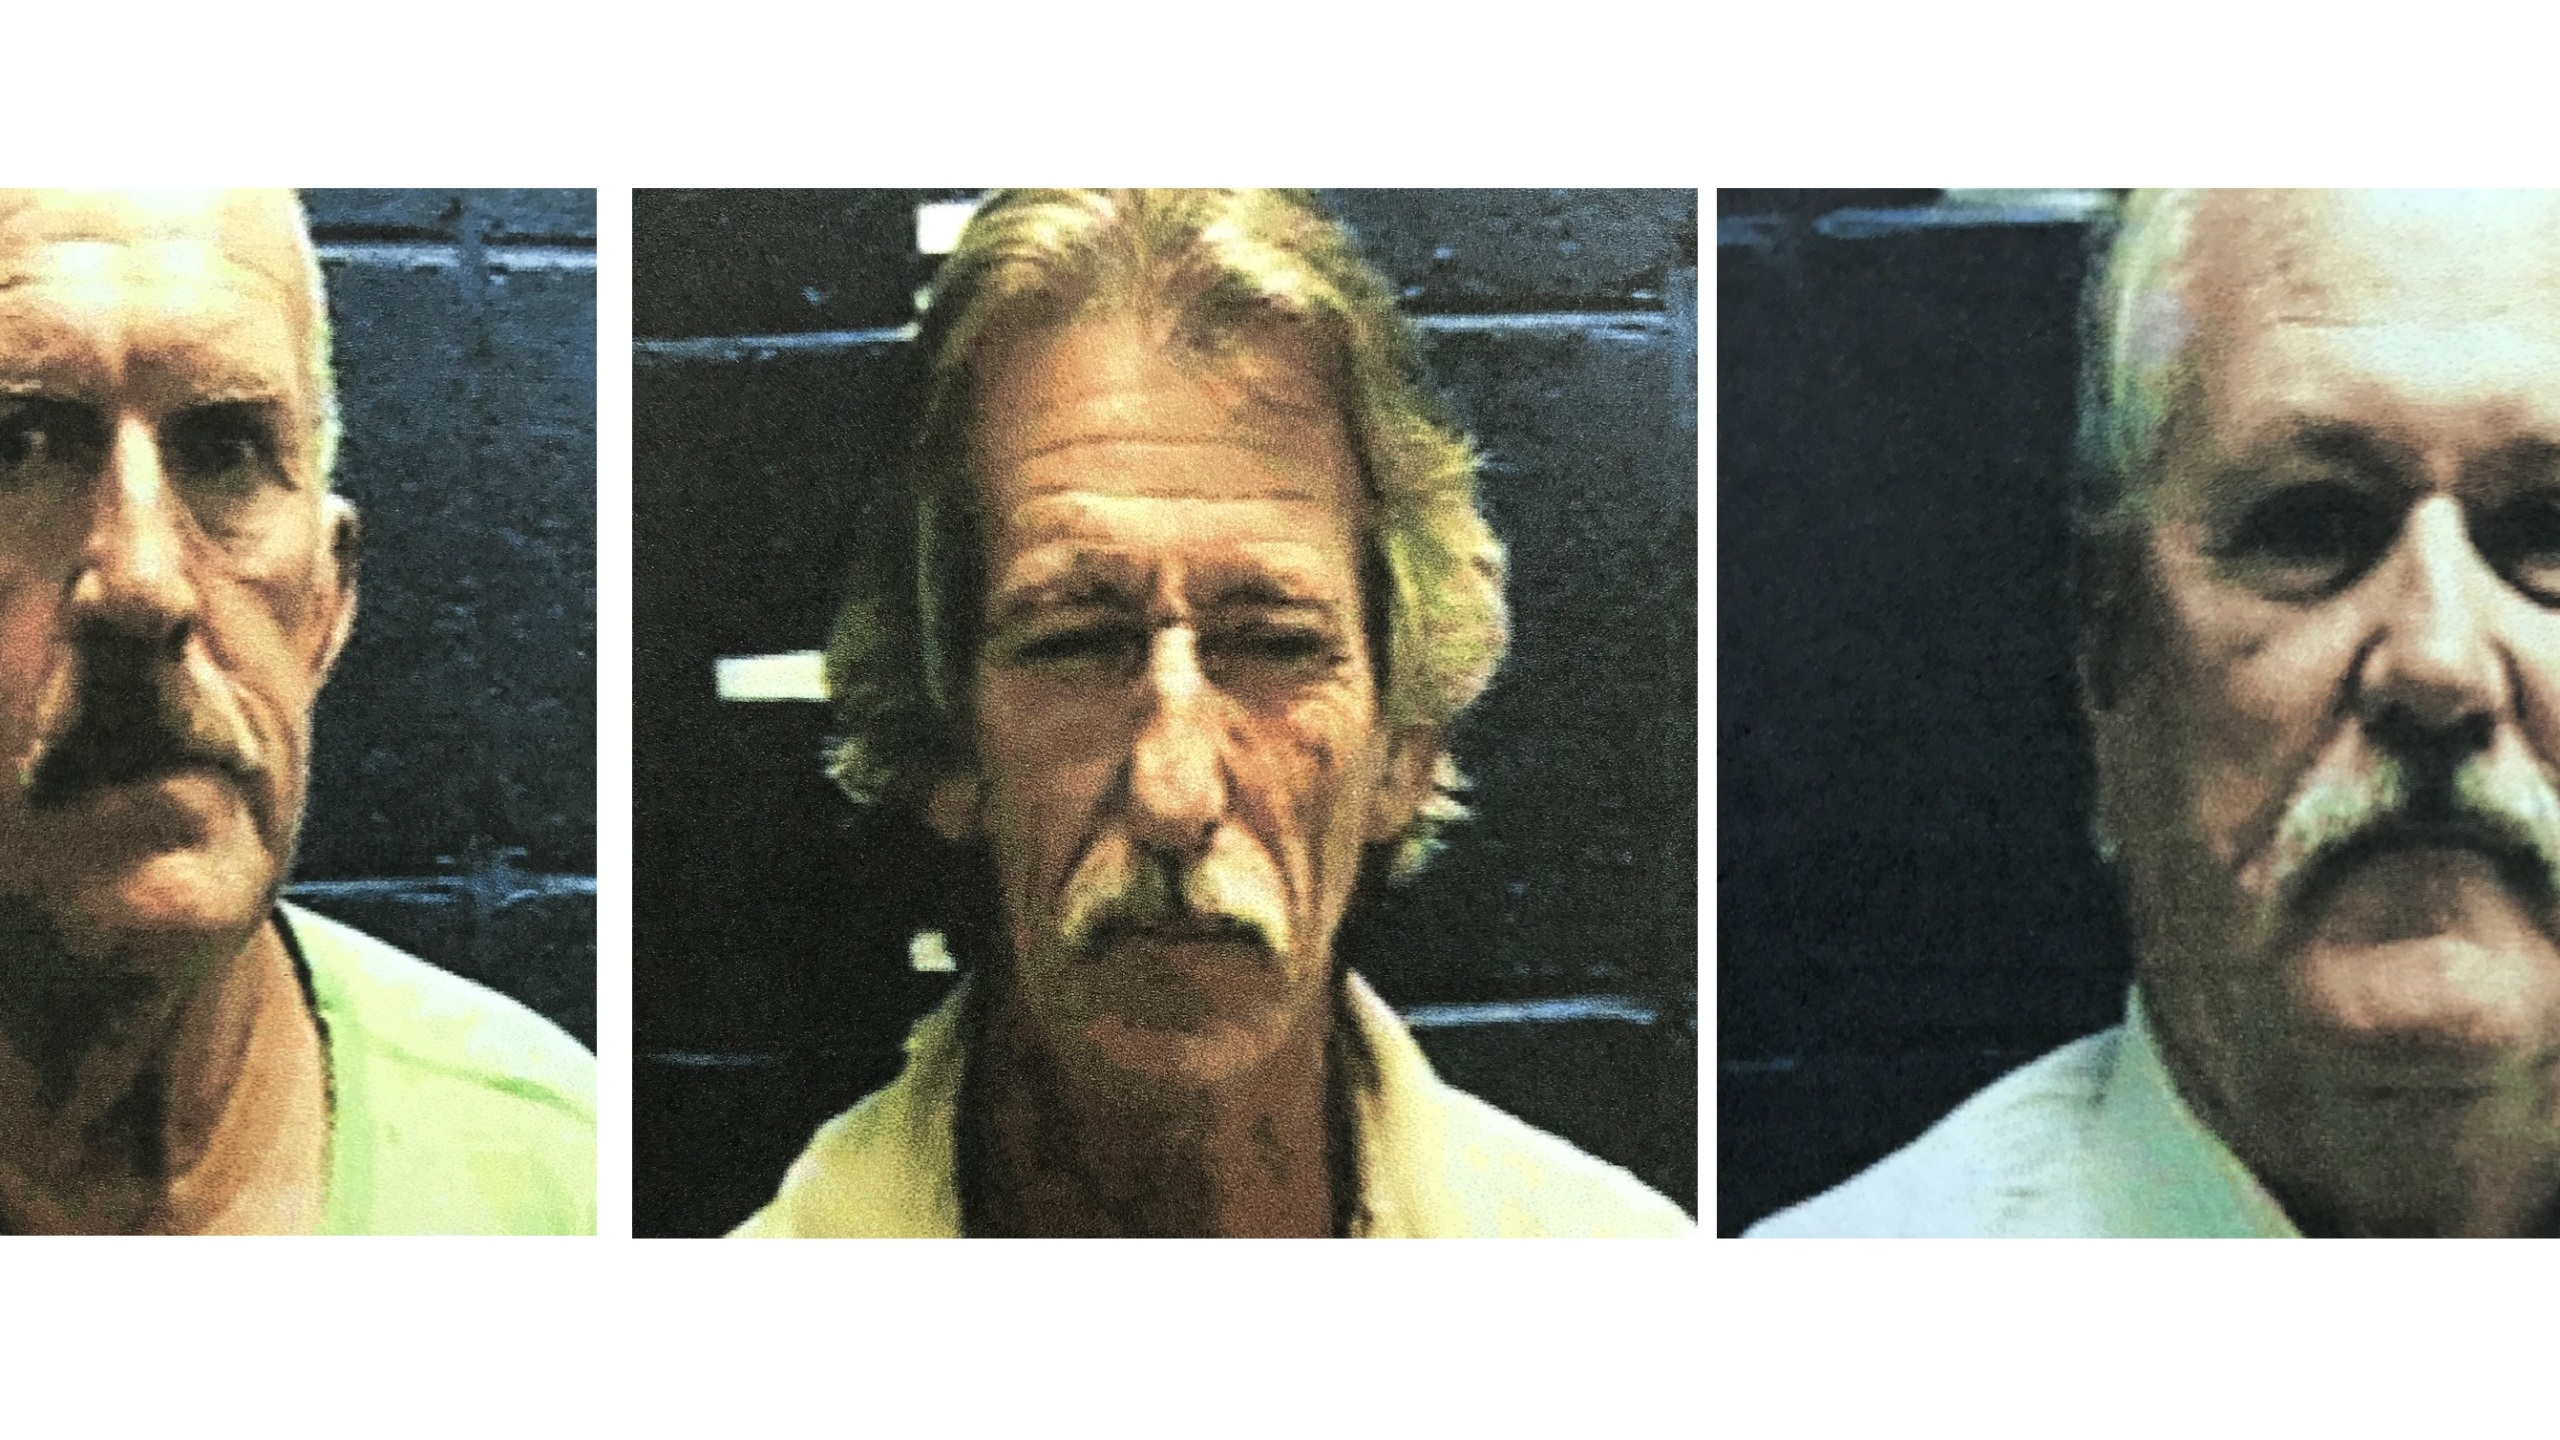 3 Wayne County School District employees arrested on